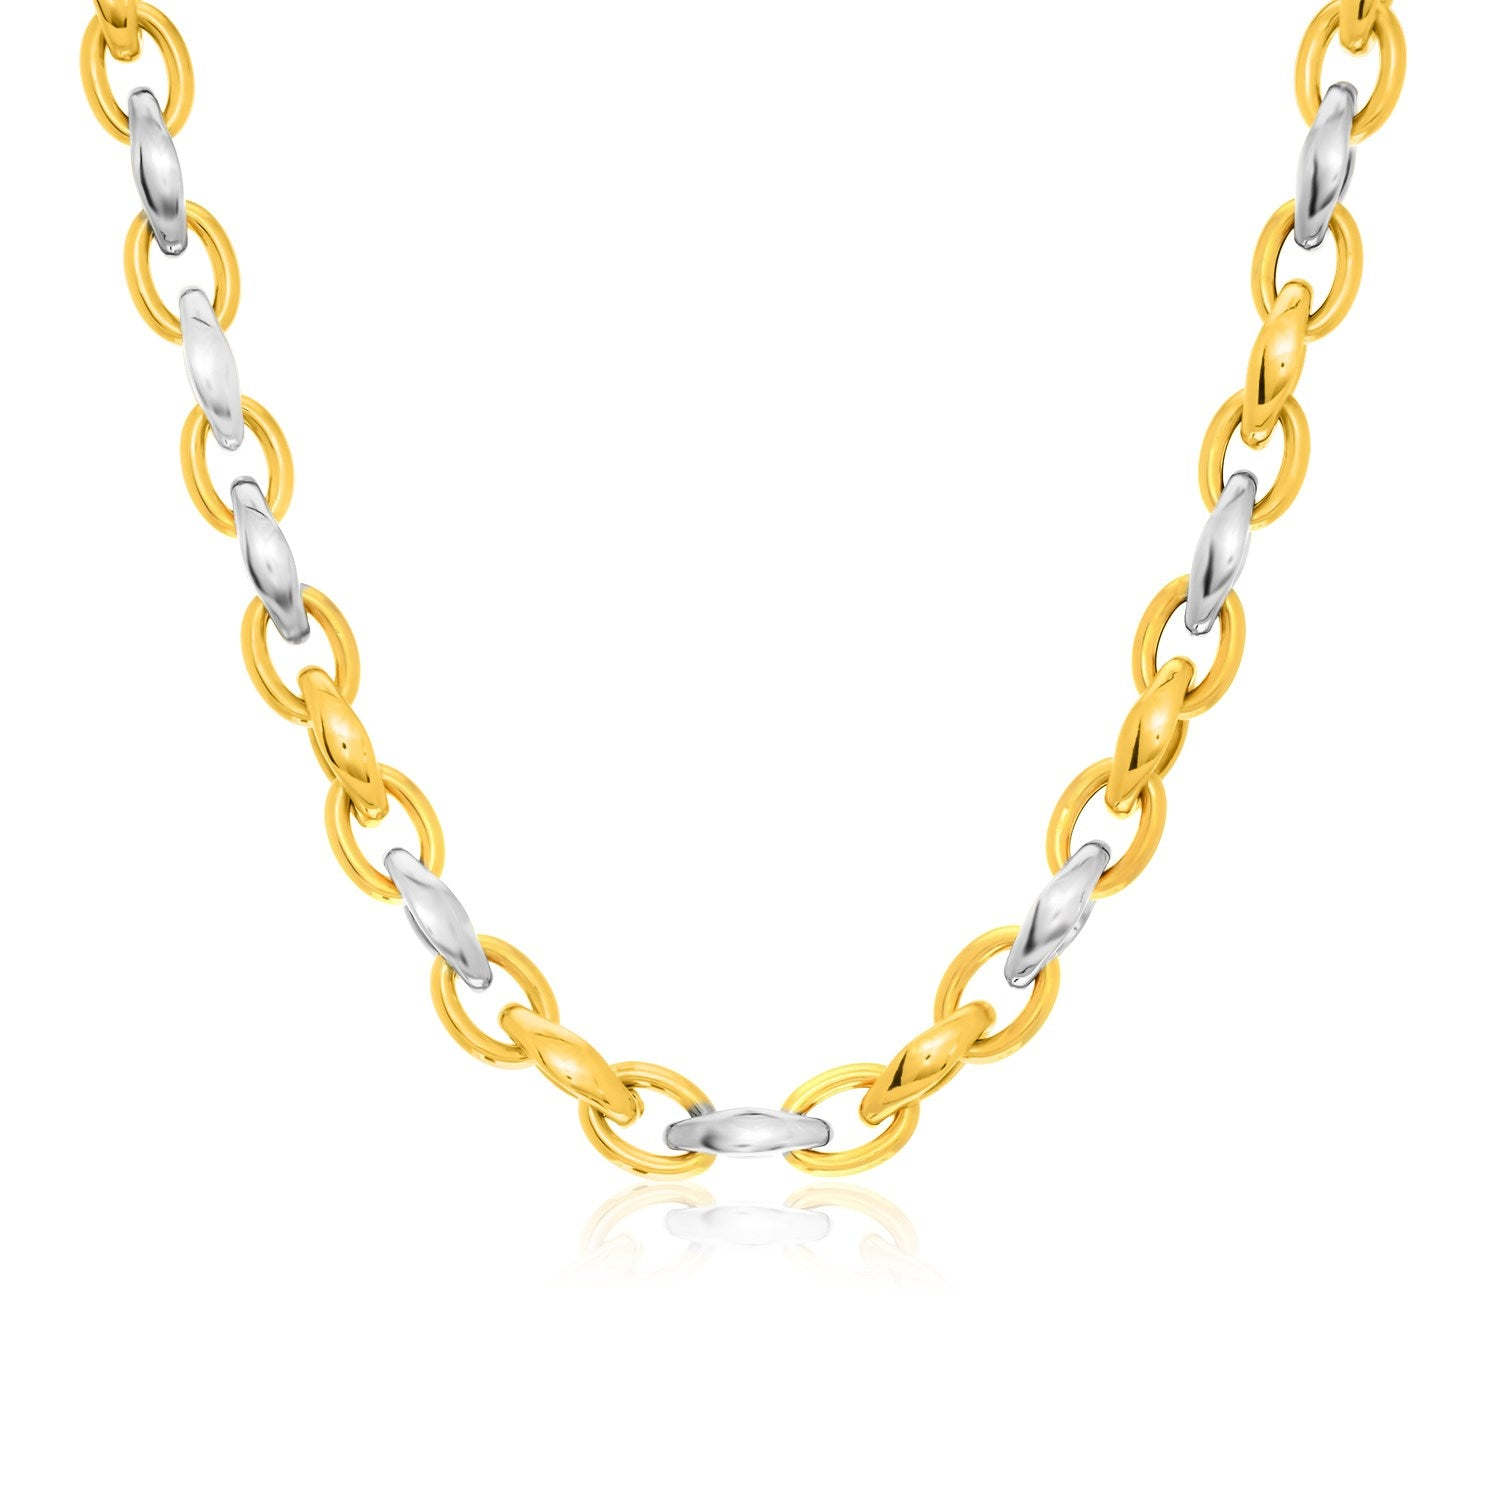 chains tone reversible necklace yellow gold mens thick inch miami chain two